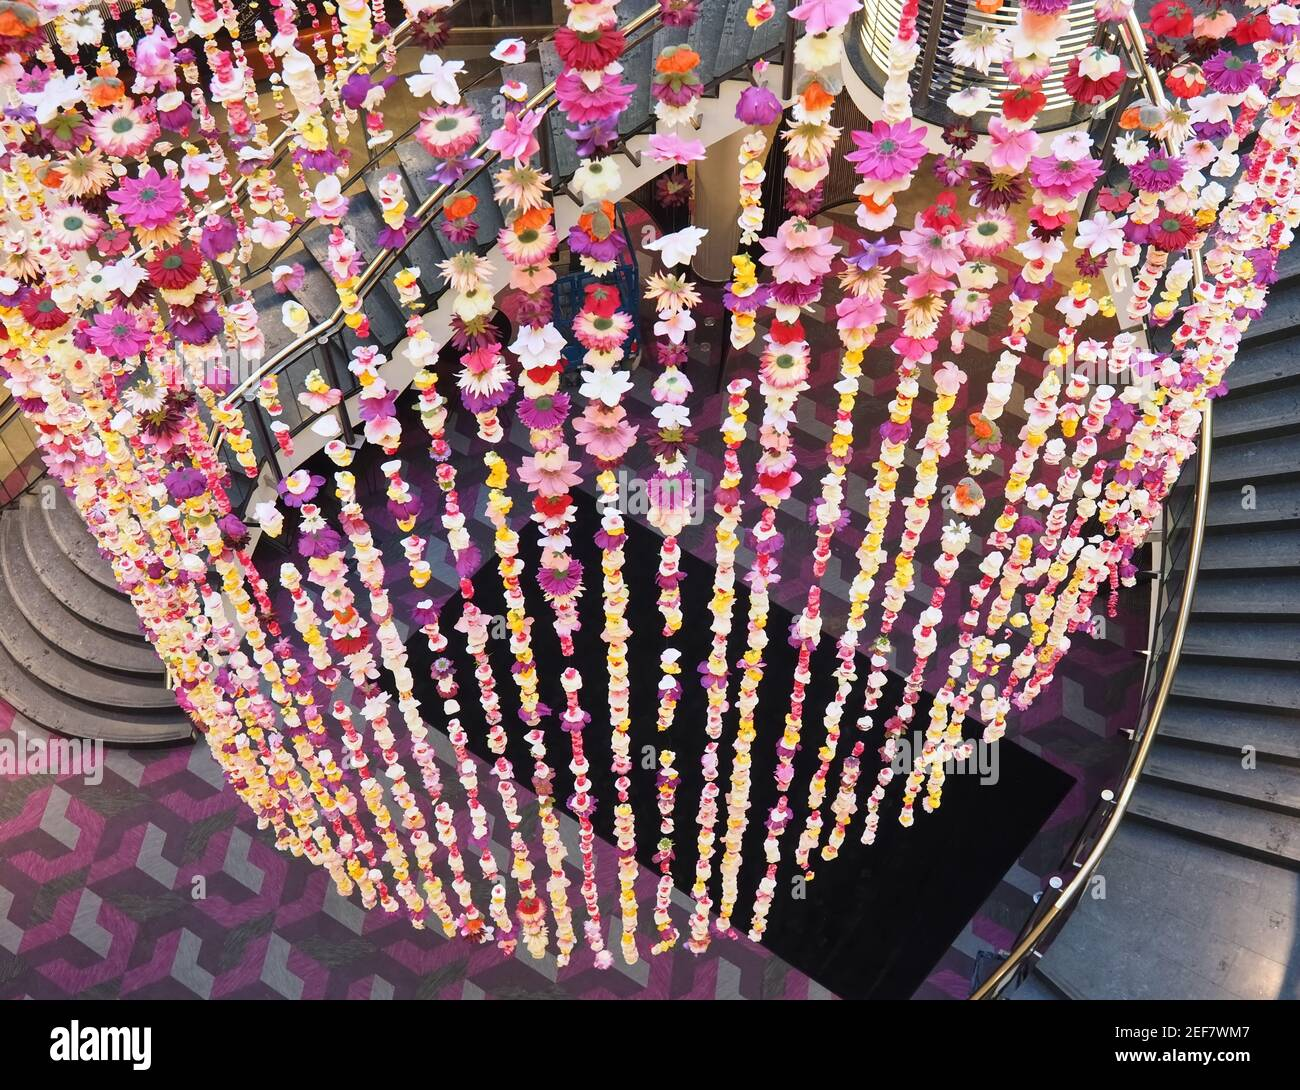 Page 2 - Europa Center Shopping Mall High Resolution Stock Photography and  Images - AlamyAlamy